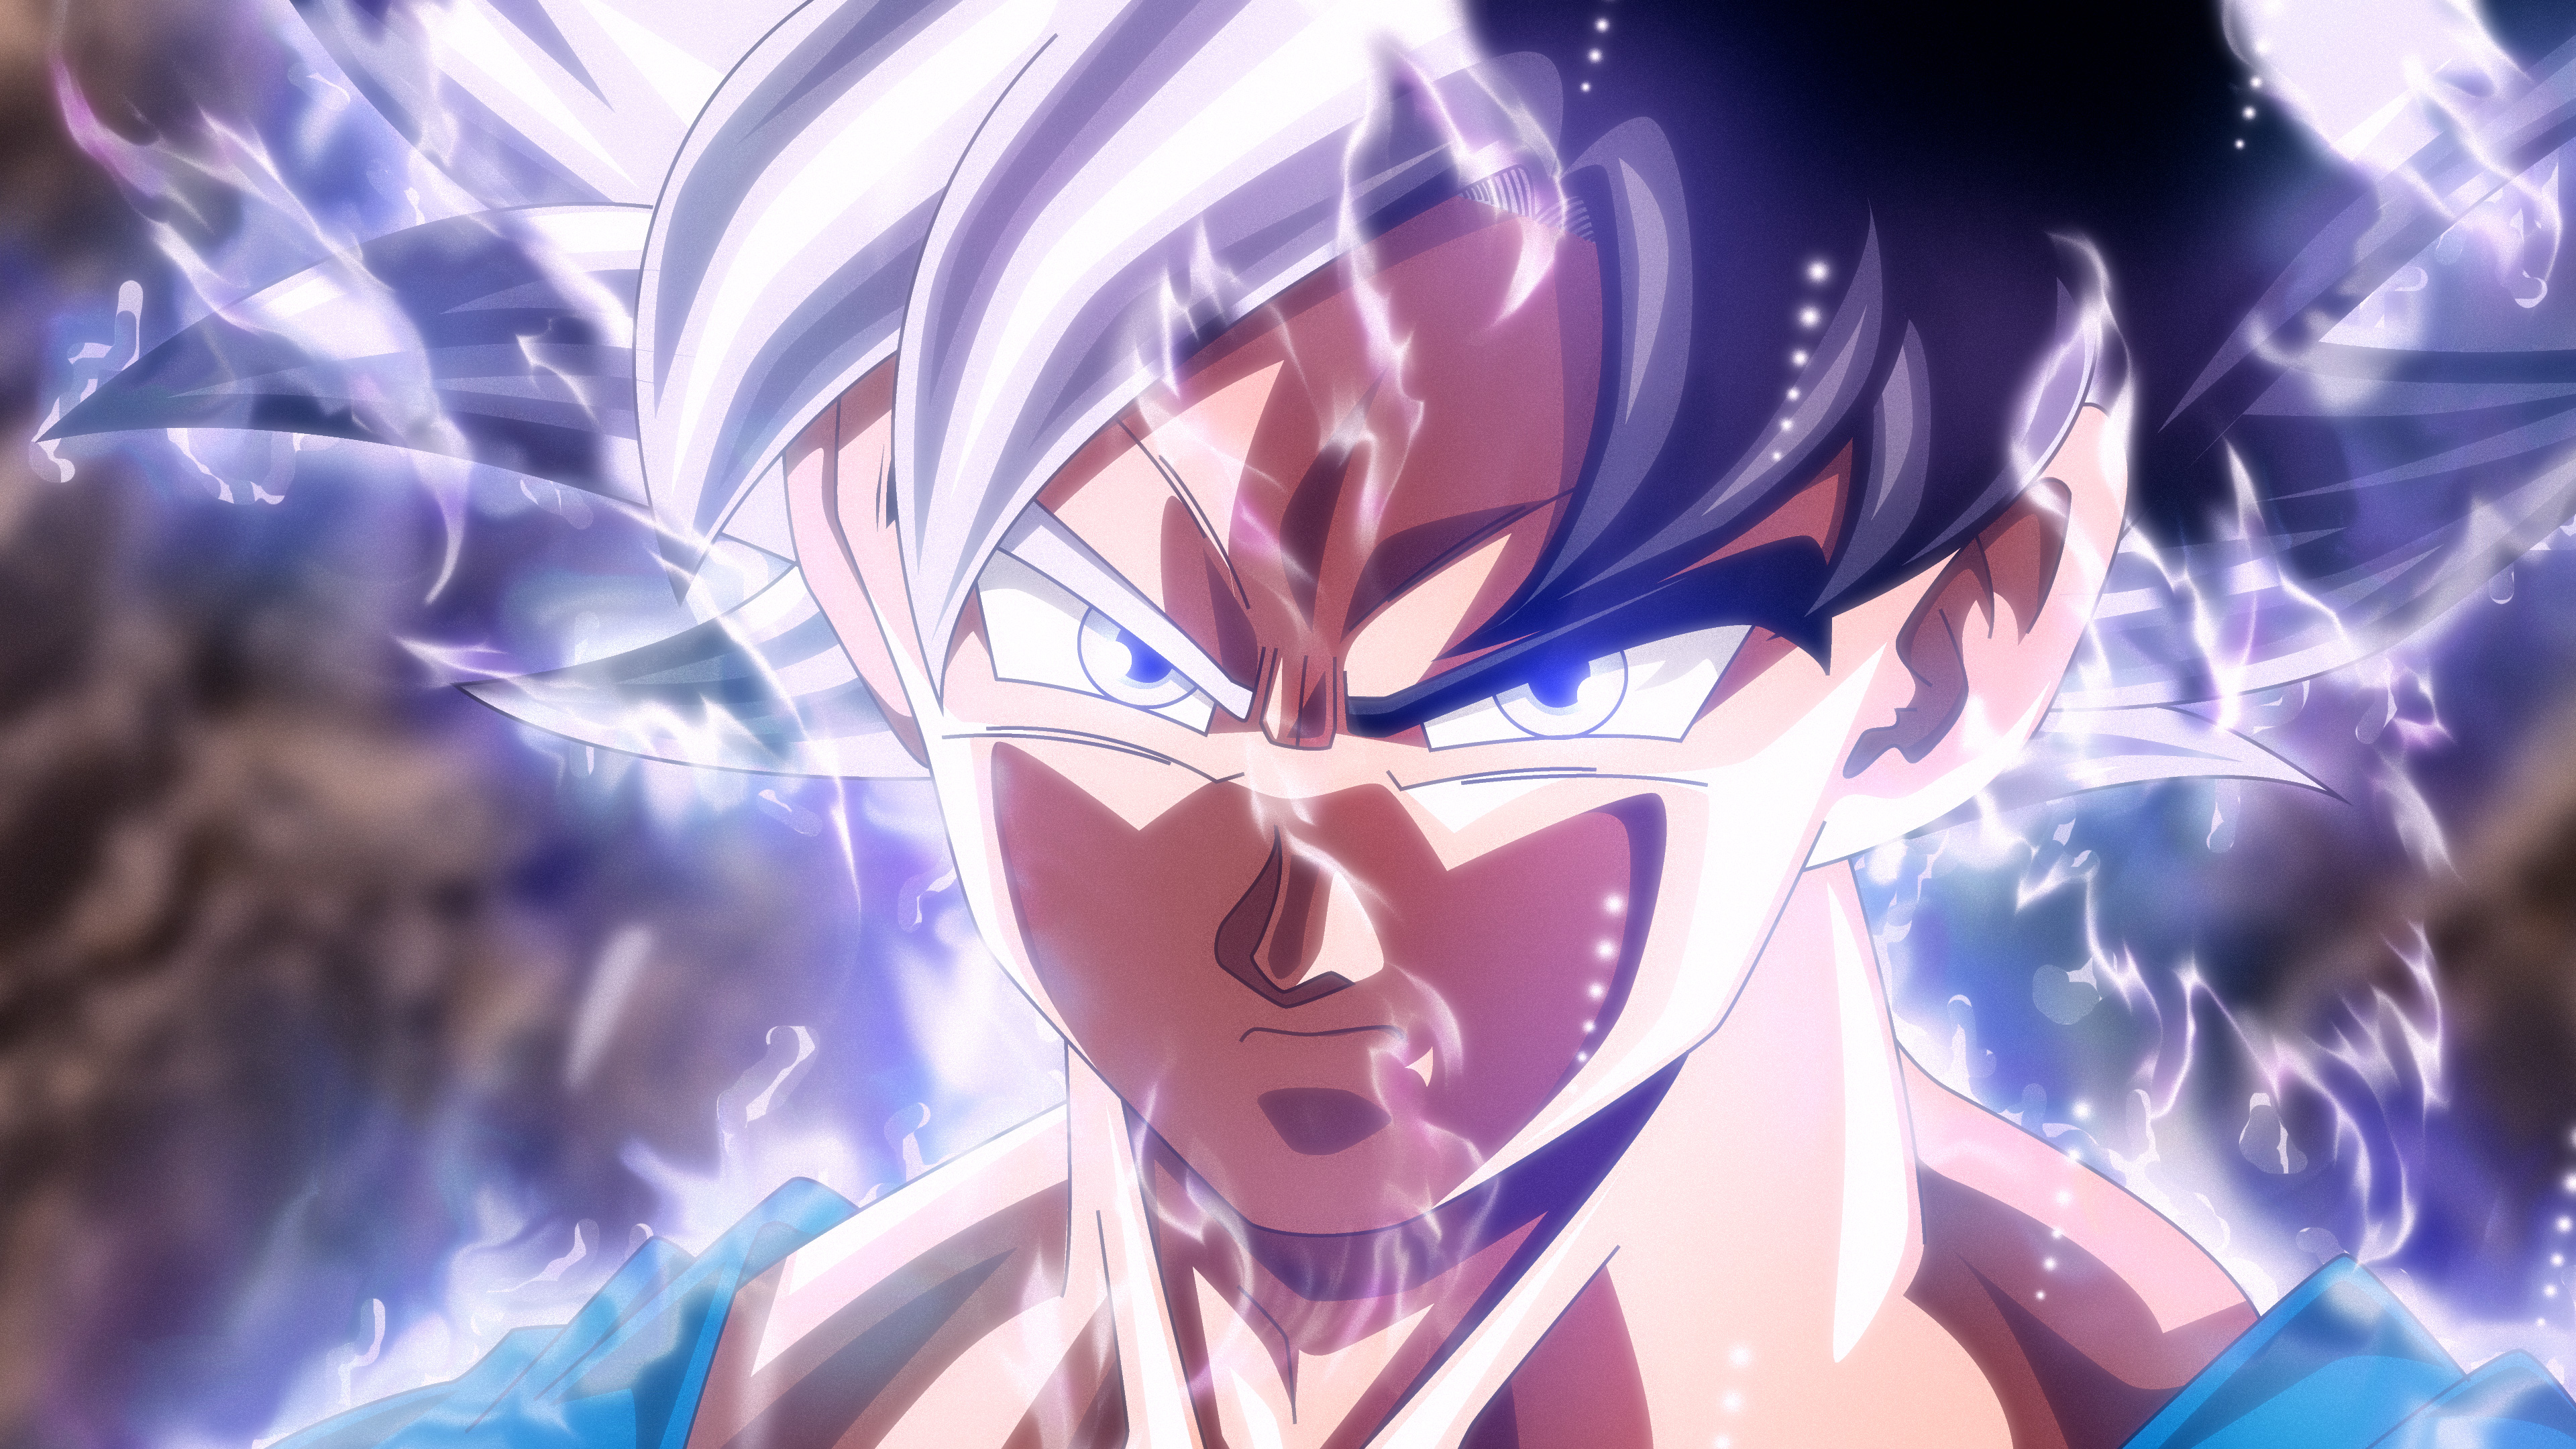 Wallpaper 4k Son Goku Mastered Ultra Instinct 4k Wallpapers